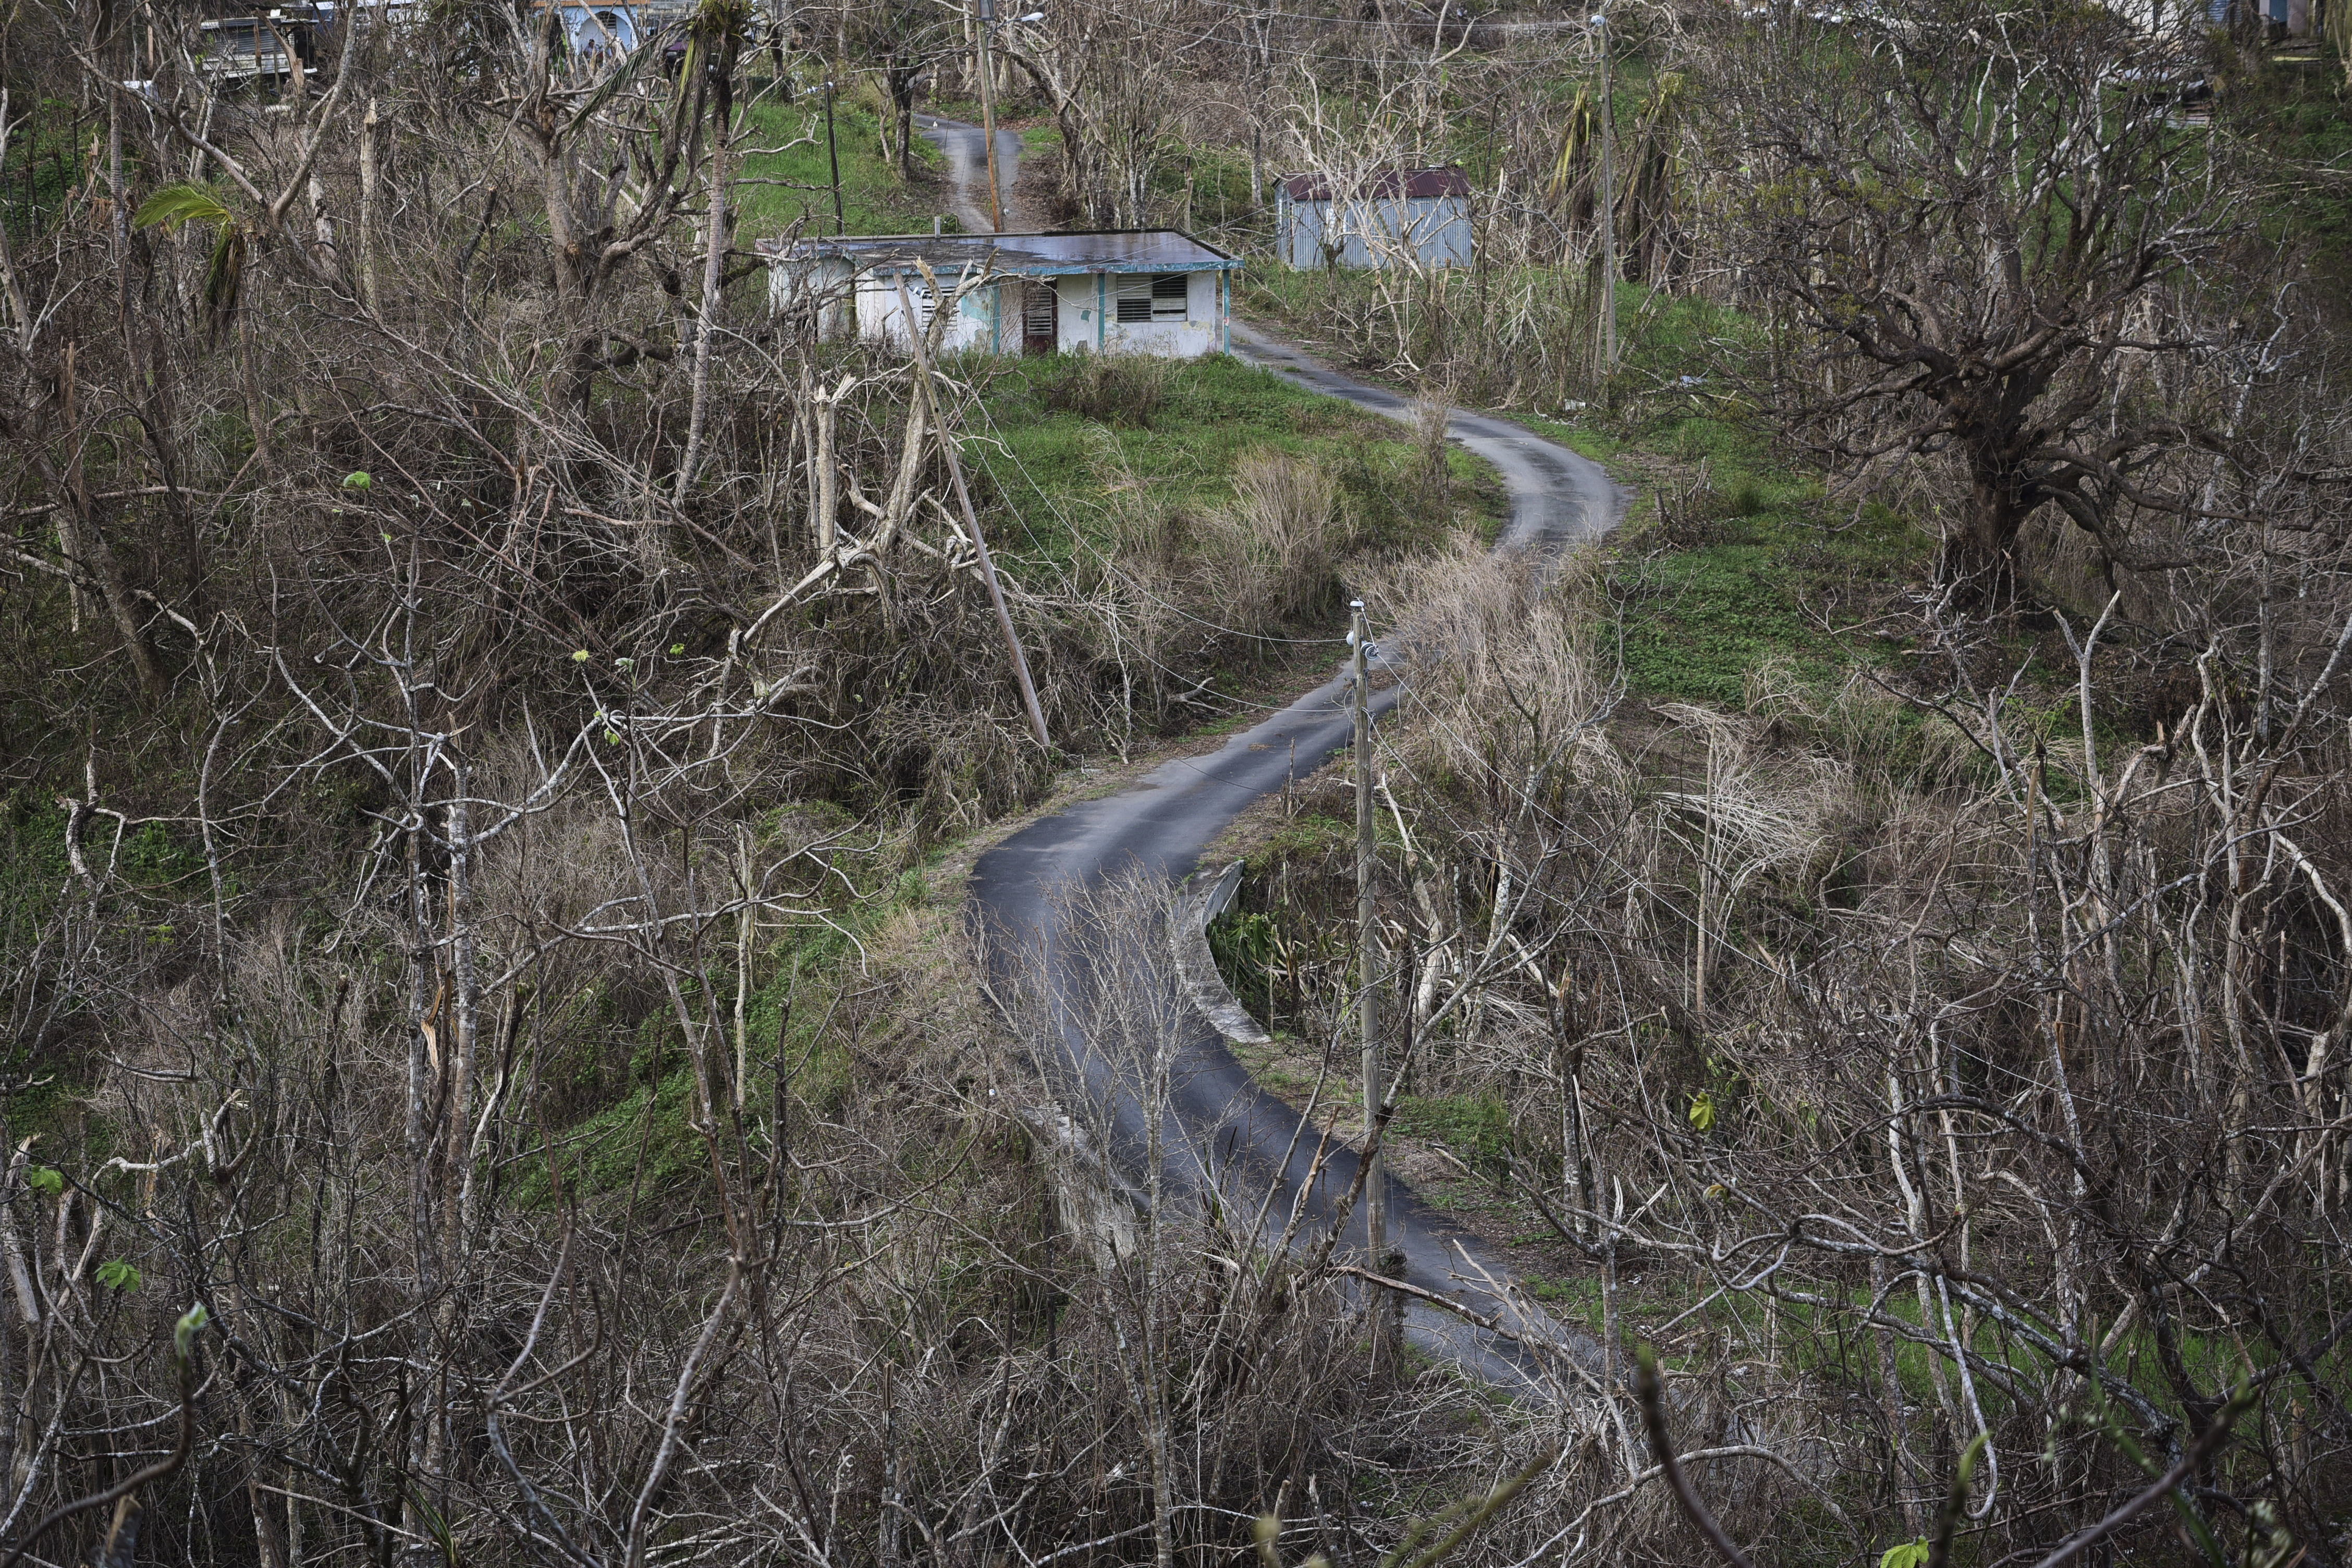 Trees stand barren in the aftermath of Hurricane Maria along a road in Montones Cuatro in the Piedrazul sector of Las Piedras, Puerto Rico, Monday, Oct. 2, 2017. Power is still cut off on most of the island, schools and many businesses are closed and much of the countryside is struggling to find fresh water and food. (AP Photo/Carlos Giusti)